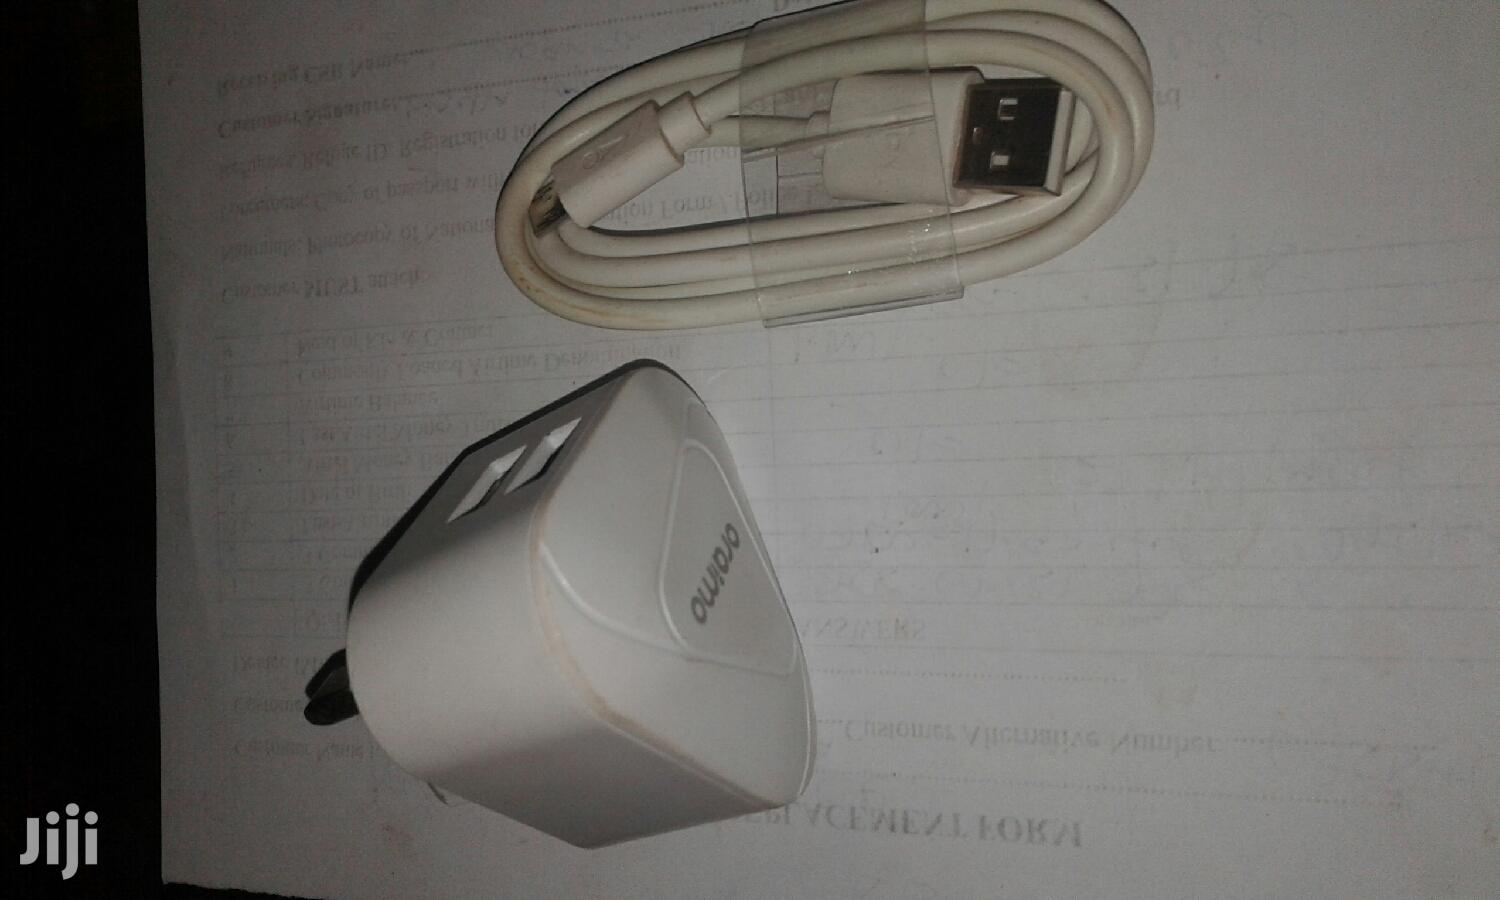 Oraimo Original Charger | Accessories for Mobile Phones & Tablets for sale in Kampala, Central Region, Uganda